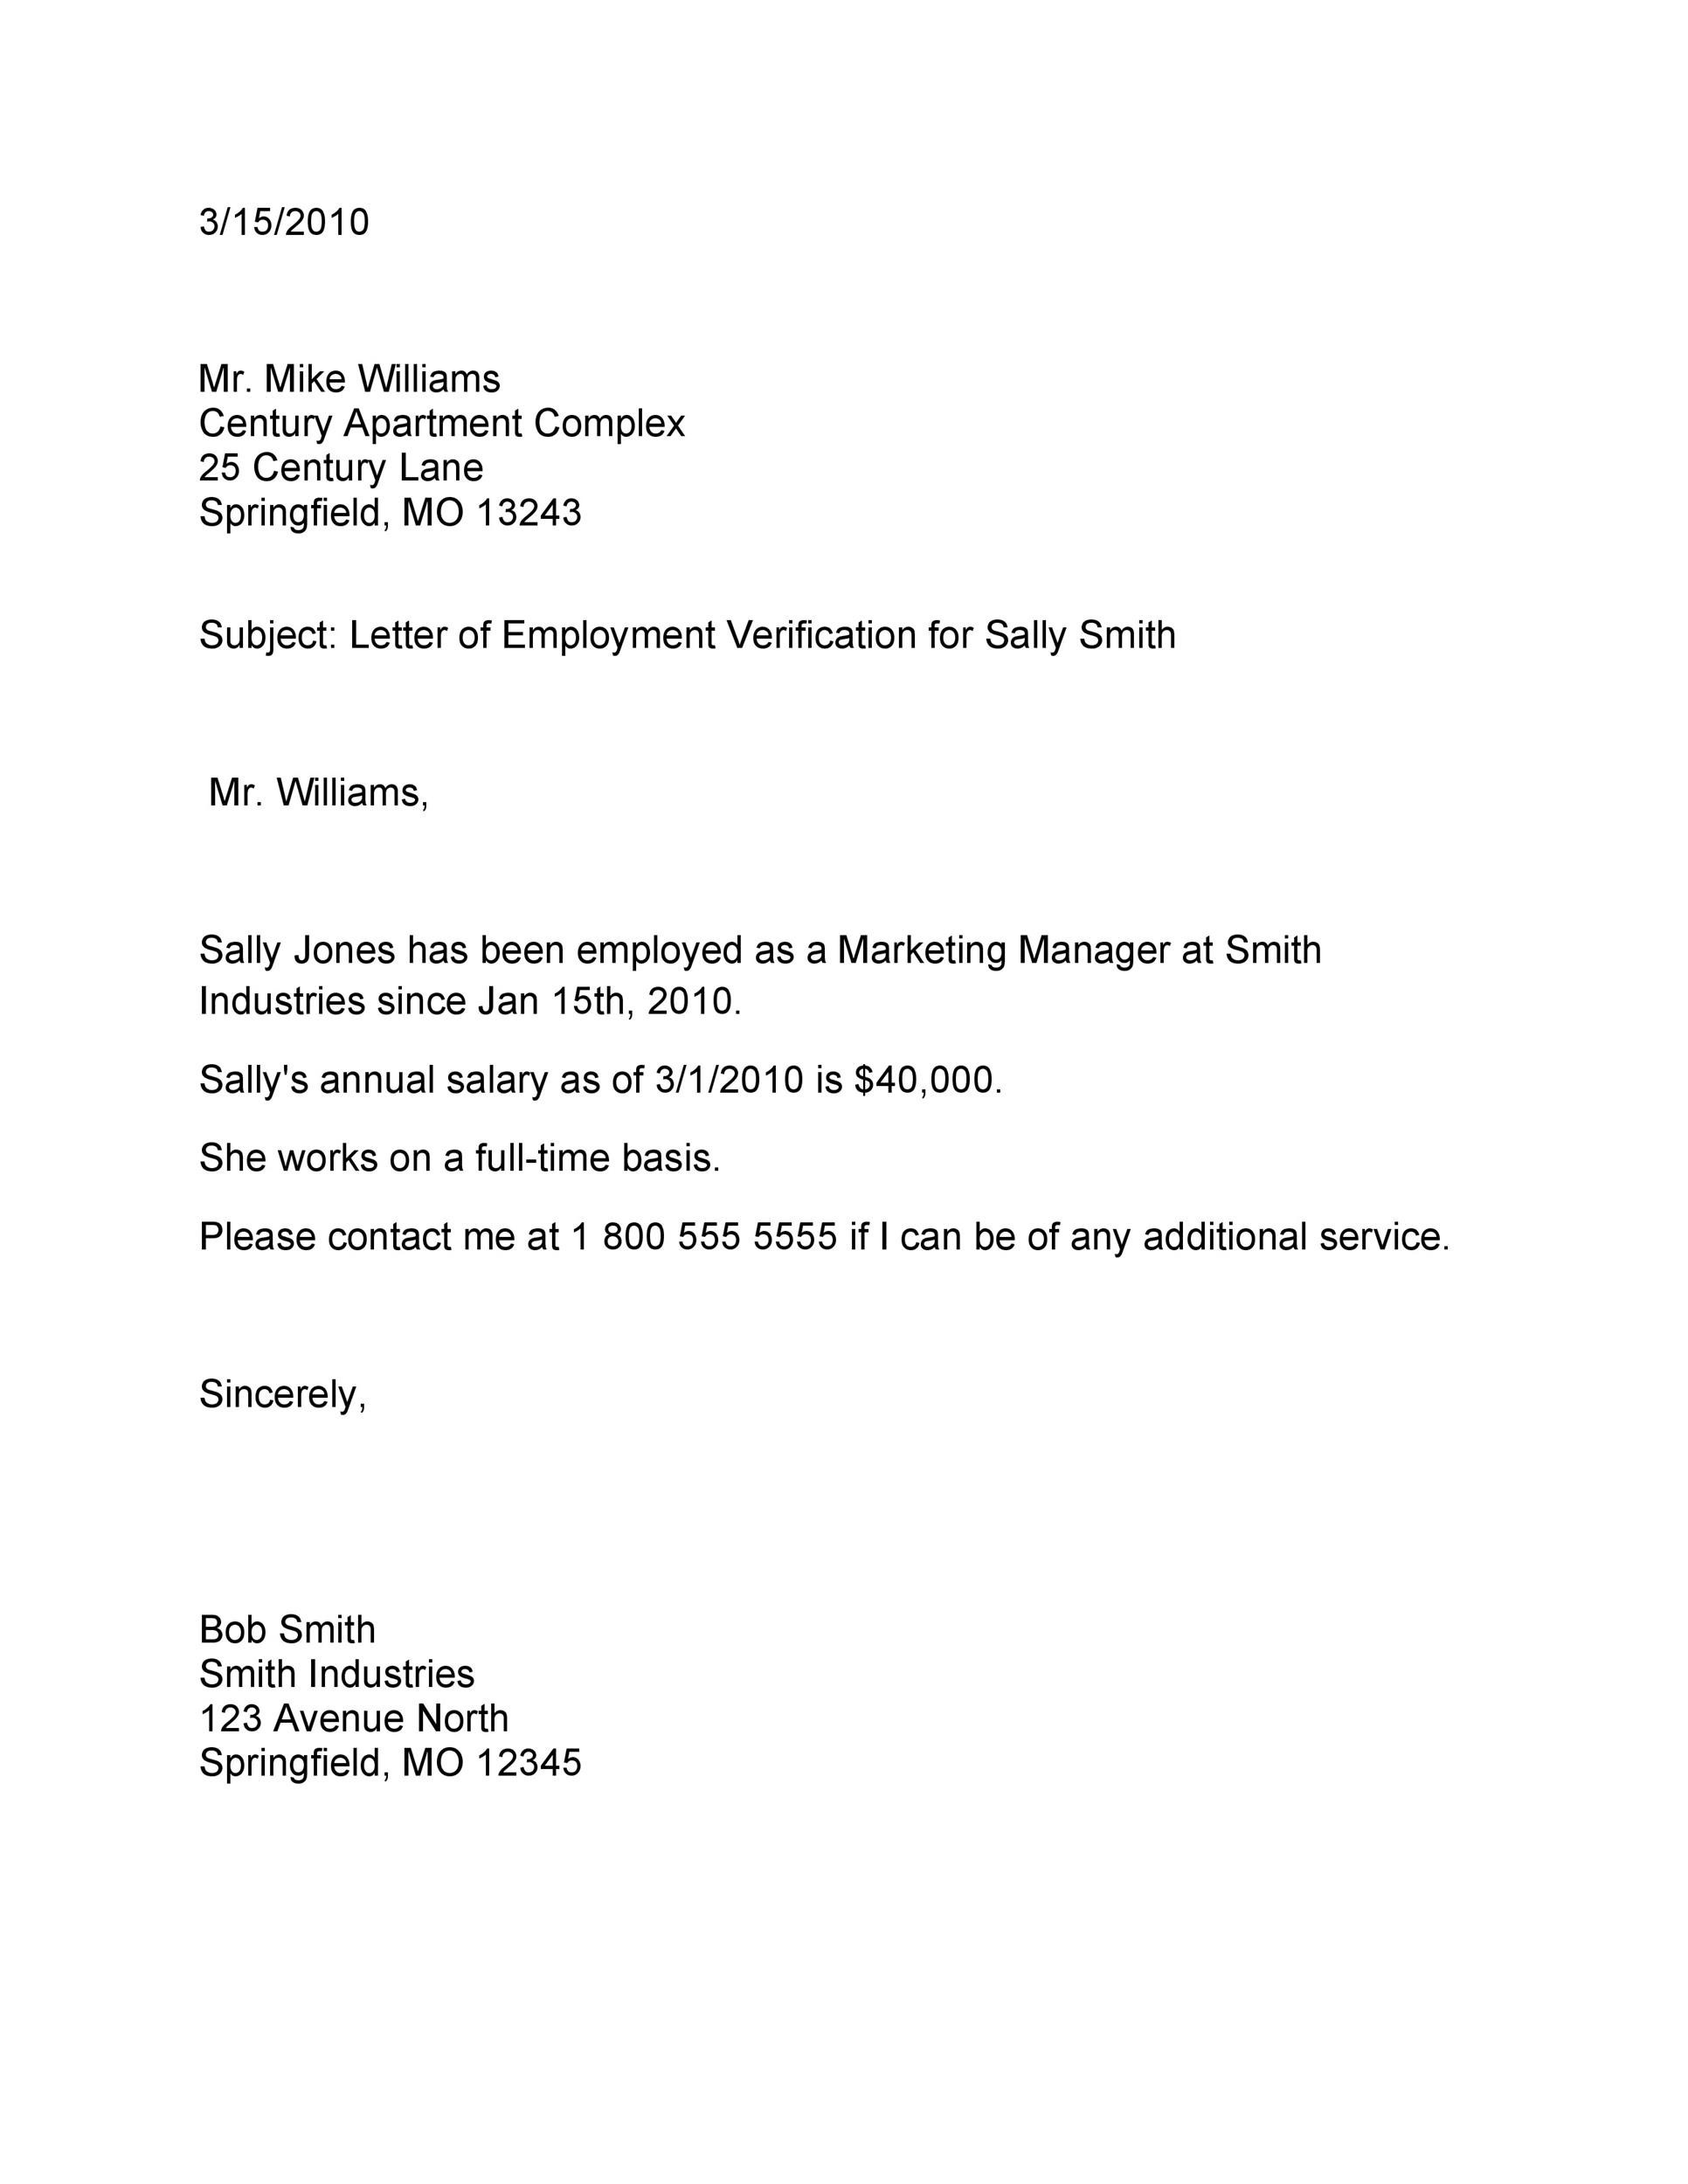 proof of employment letter 05 - Employment Proof Letter